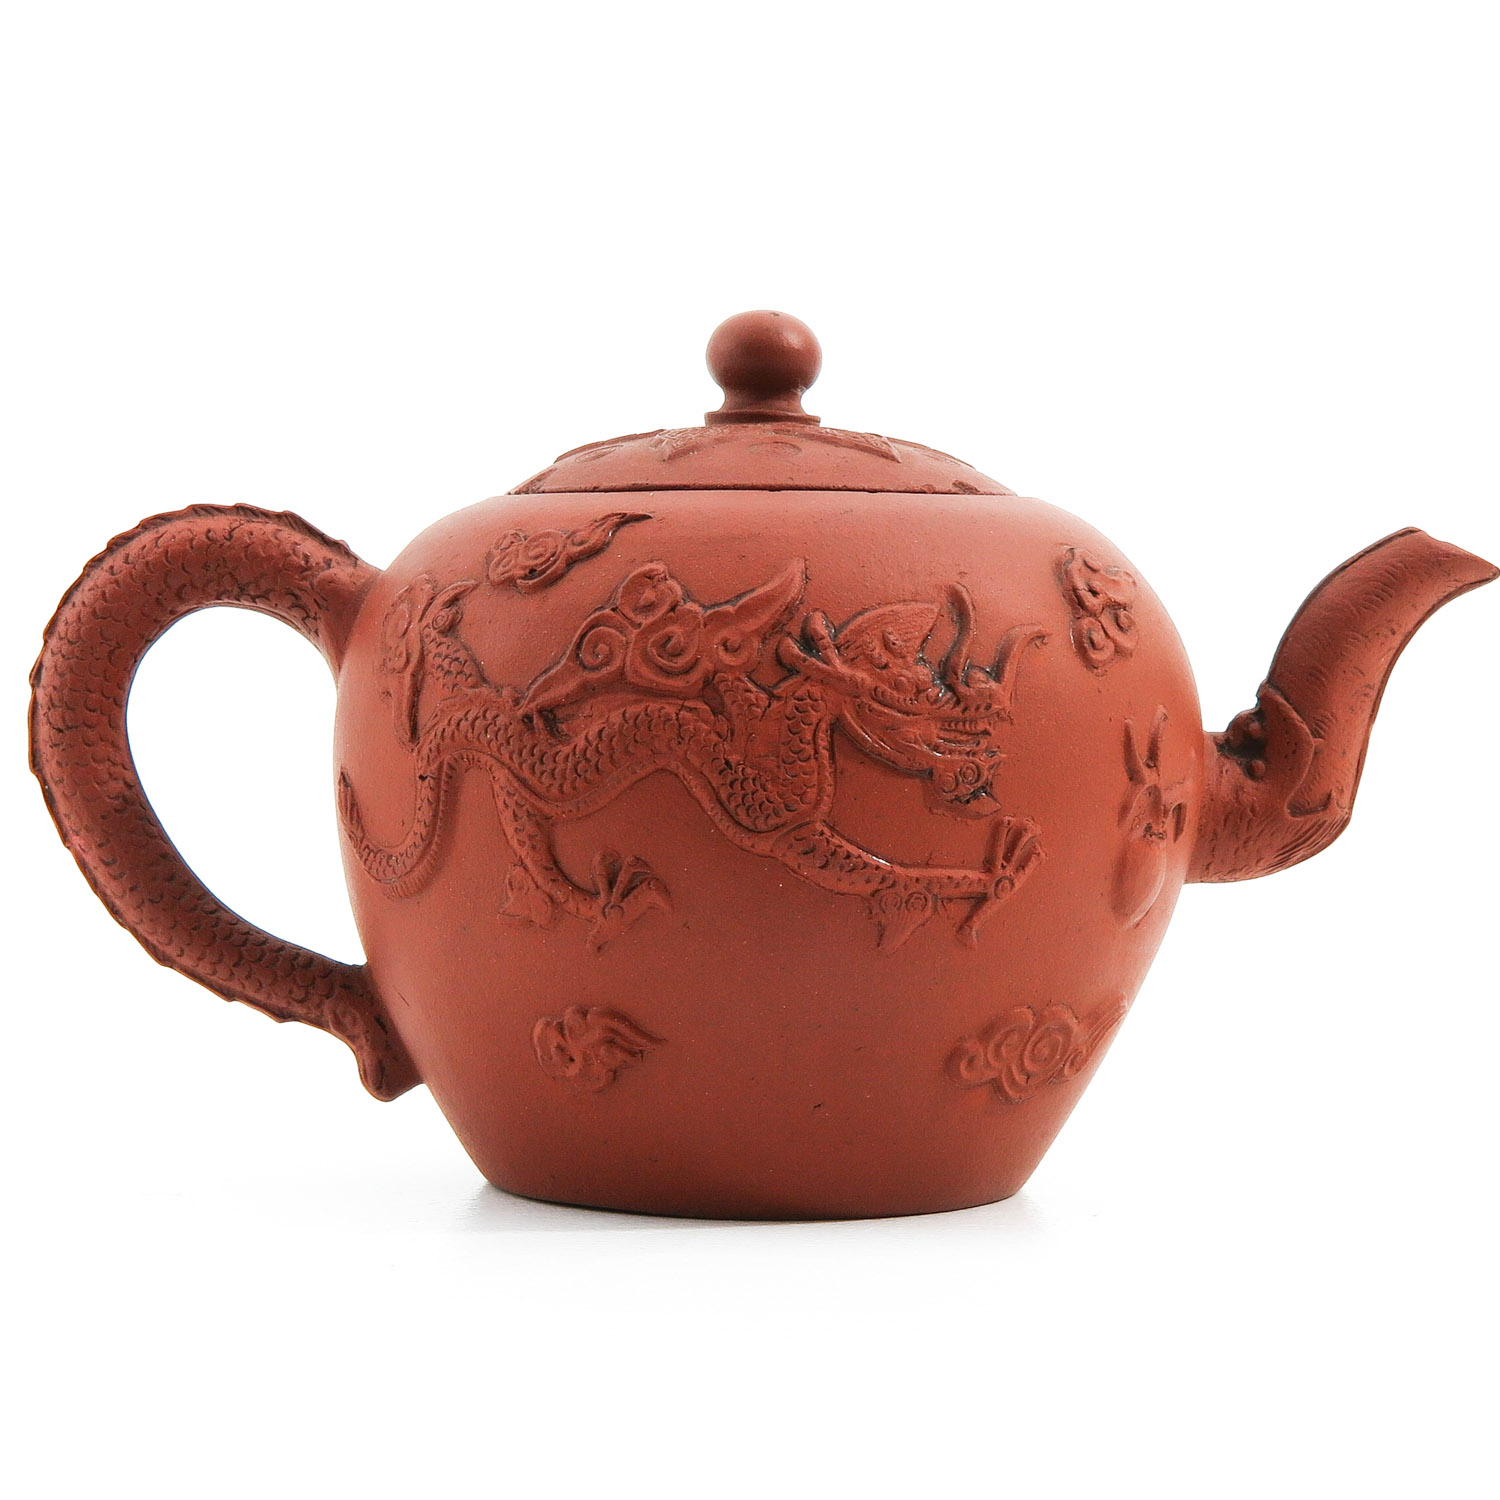 A Yixing Teapot - Image 3 of 9